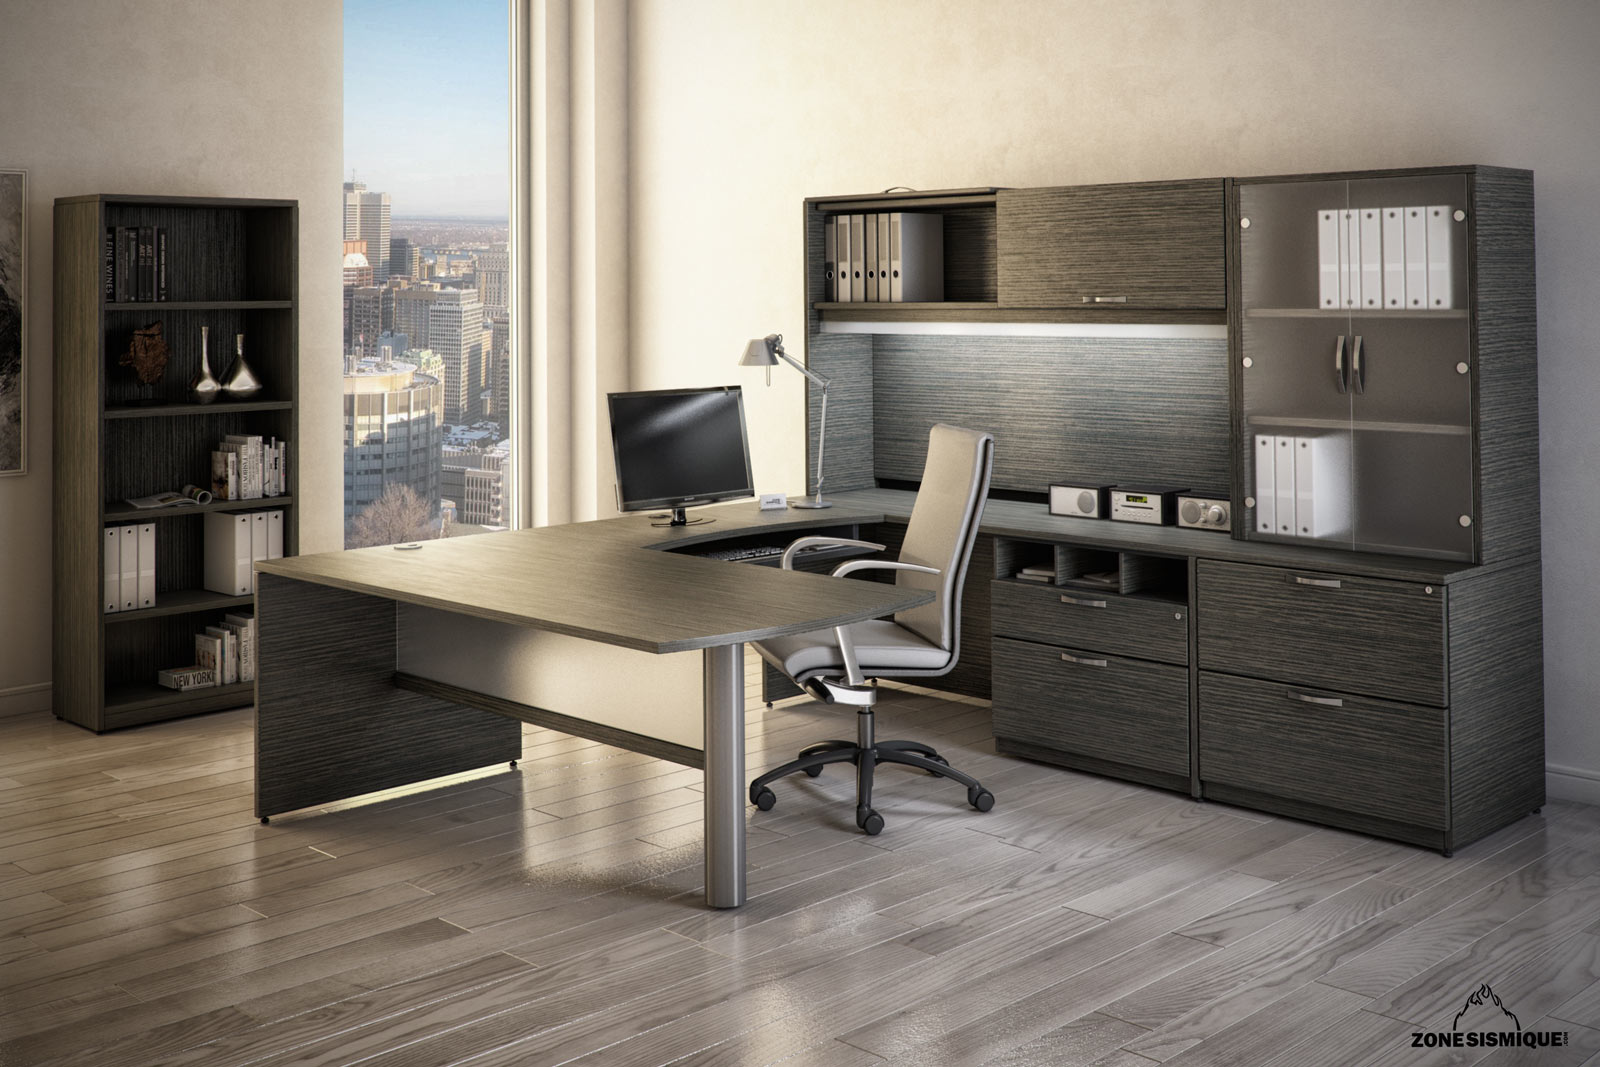 comment fonctionne la location de bureaux quip s vocatis. Black Bedroom Furniture Sets. Home Design Ideas